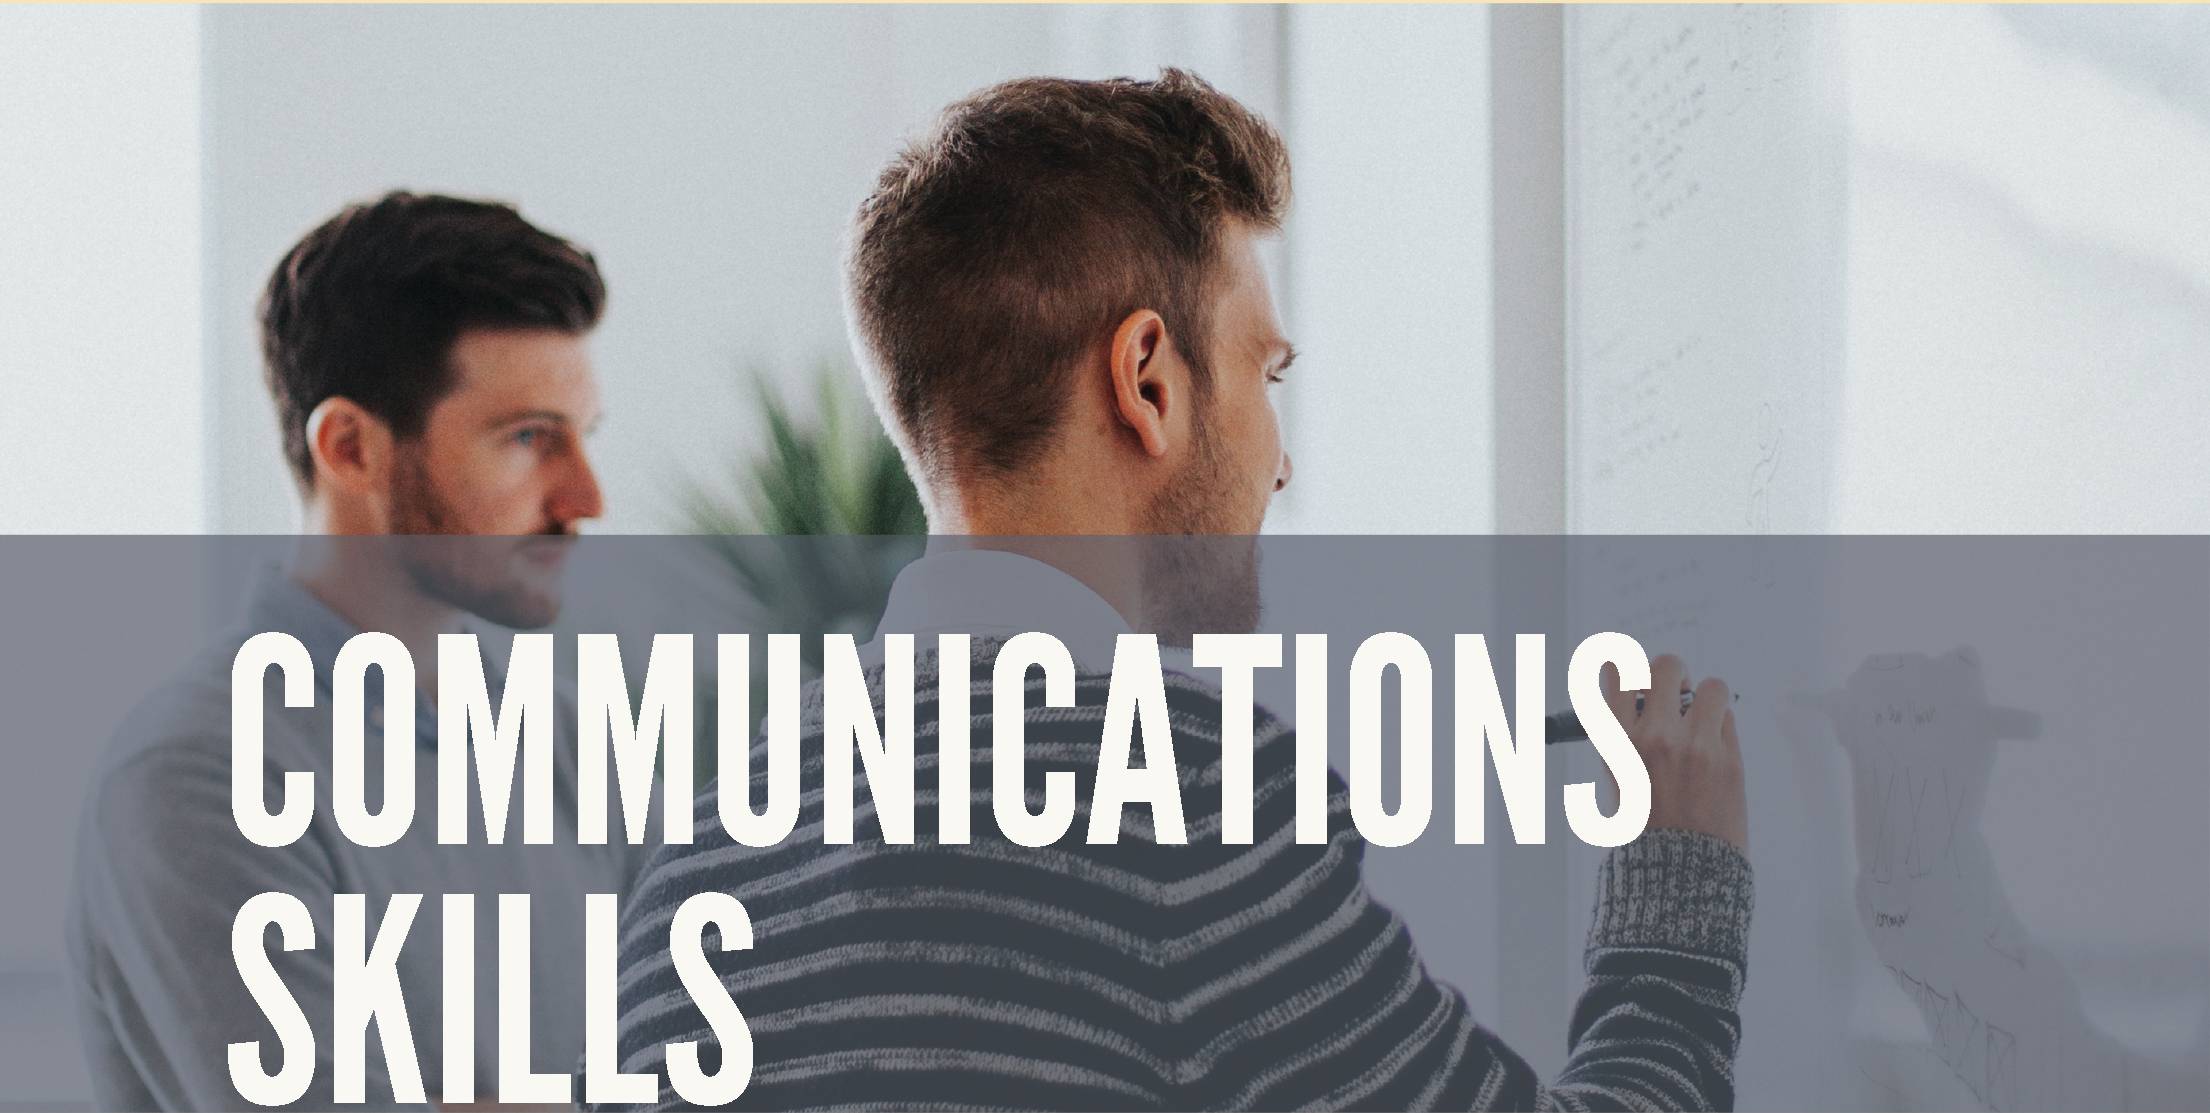 Communications Skills - In today's world communication skills are key at all levels. To be a key contributor in your organization, you need well-developed communication and professional skills. This interactive workshop focuses on various forms of communication skills; covering various topics such as appropriate workplace communication, conflict resolution, public speaking, listening and memory development, effective communication with customers, colleagues and much more. Course Duration: 2 Days